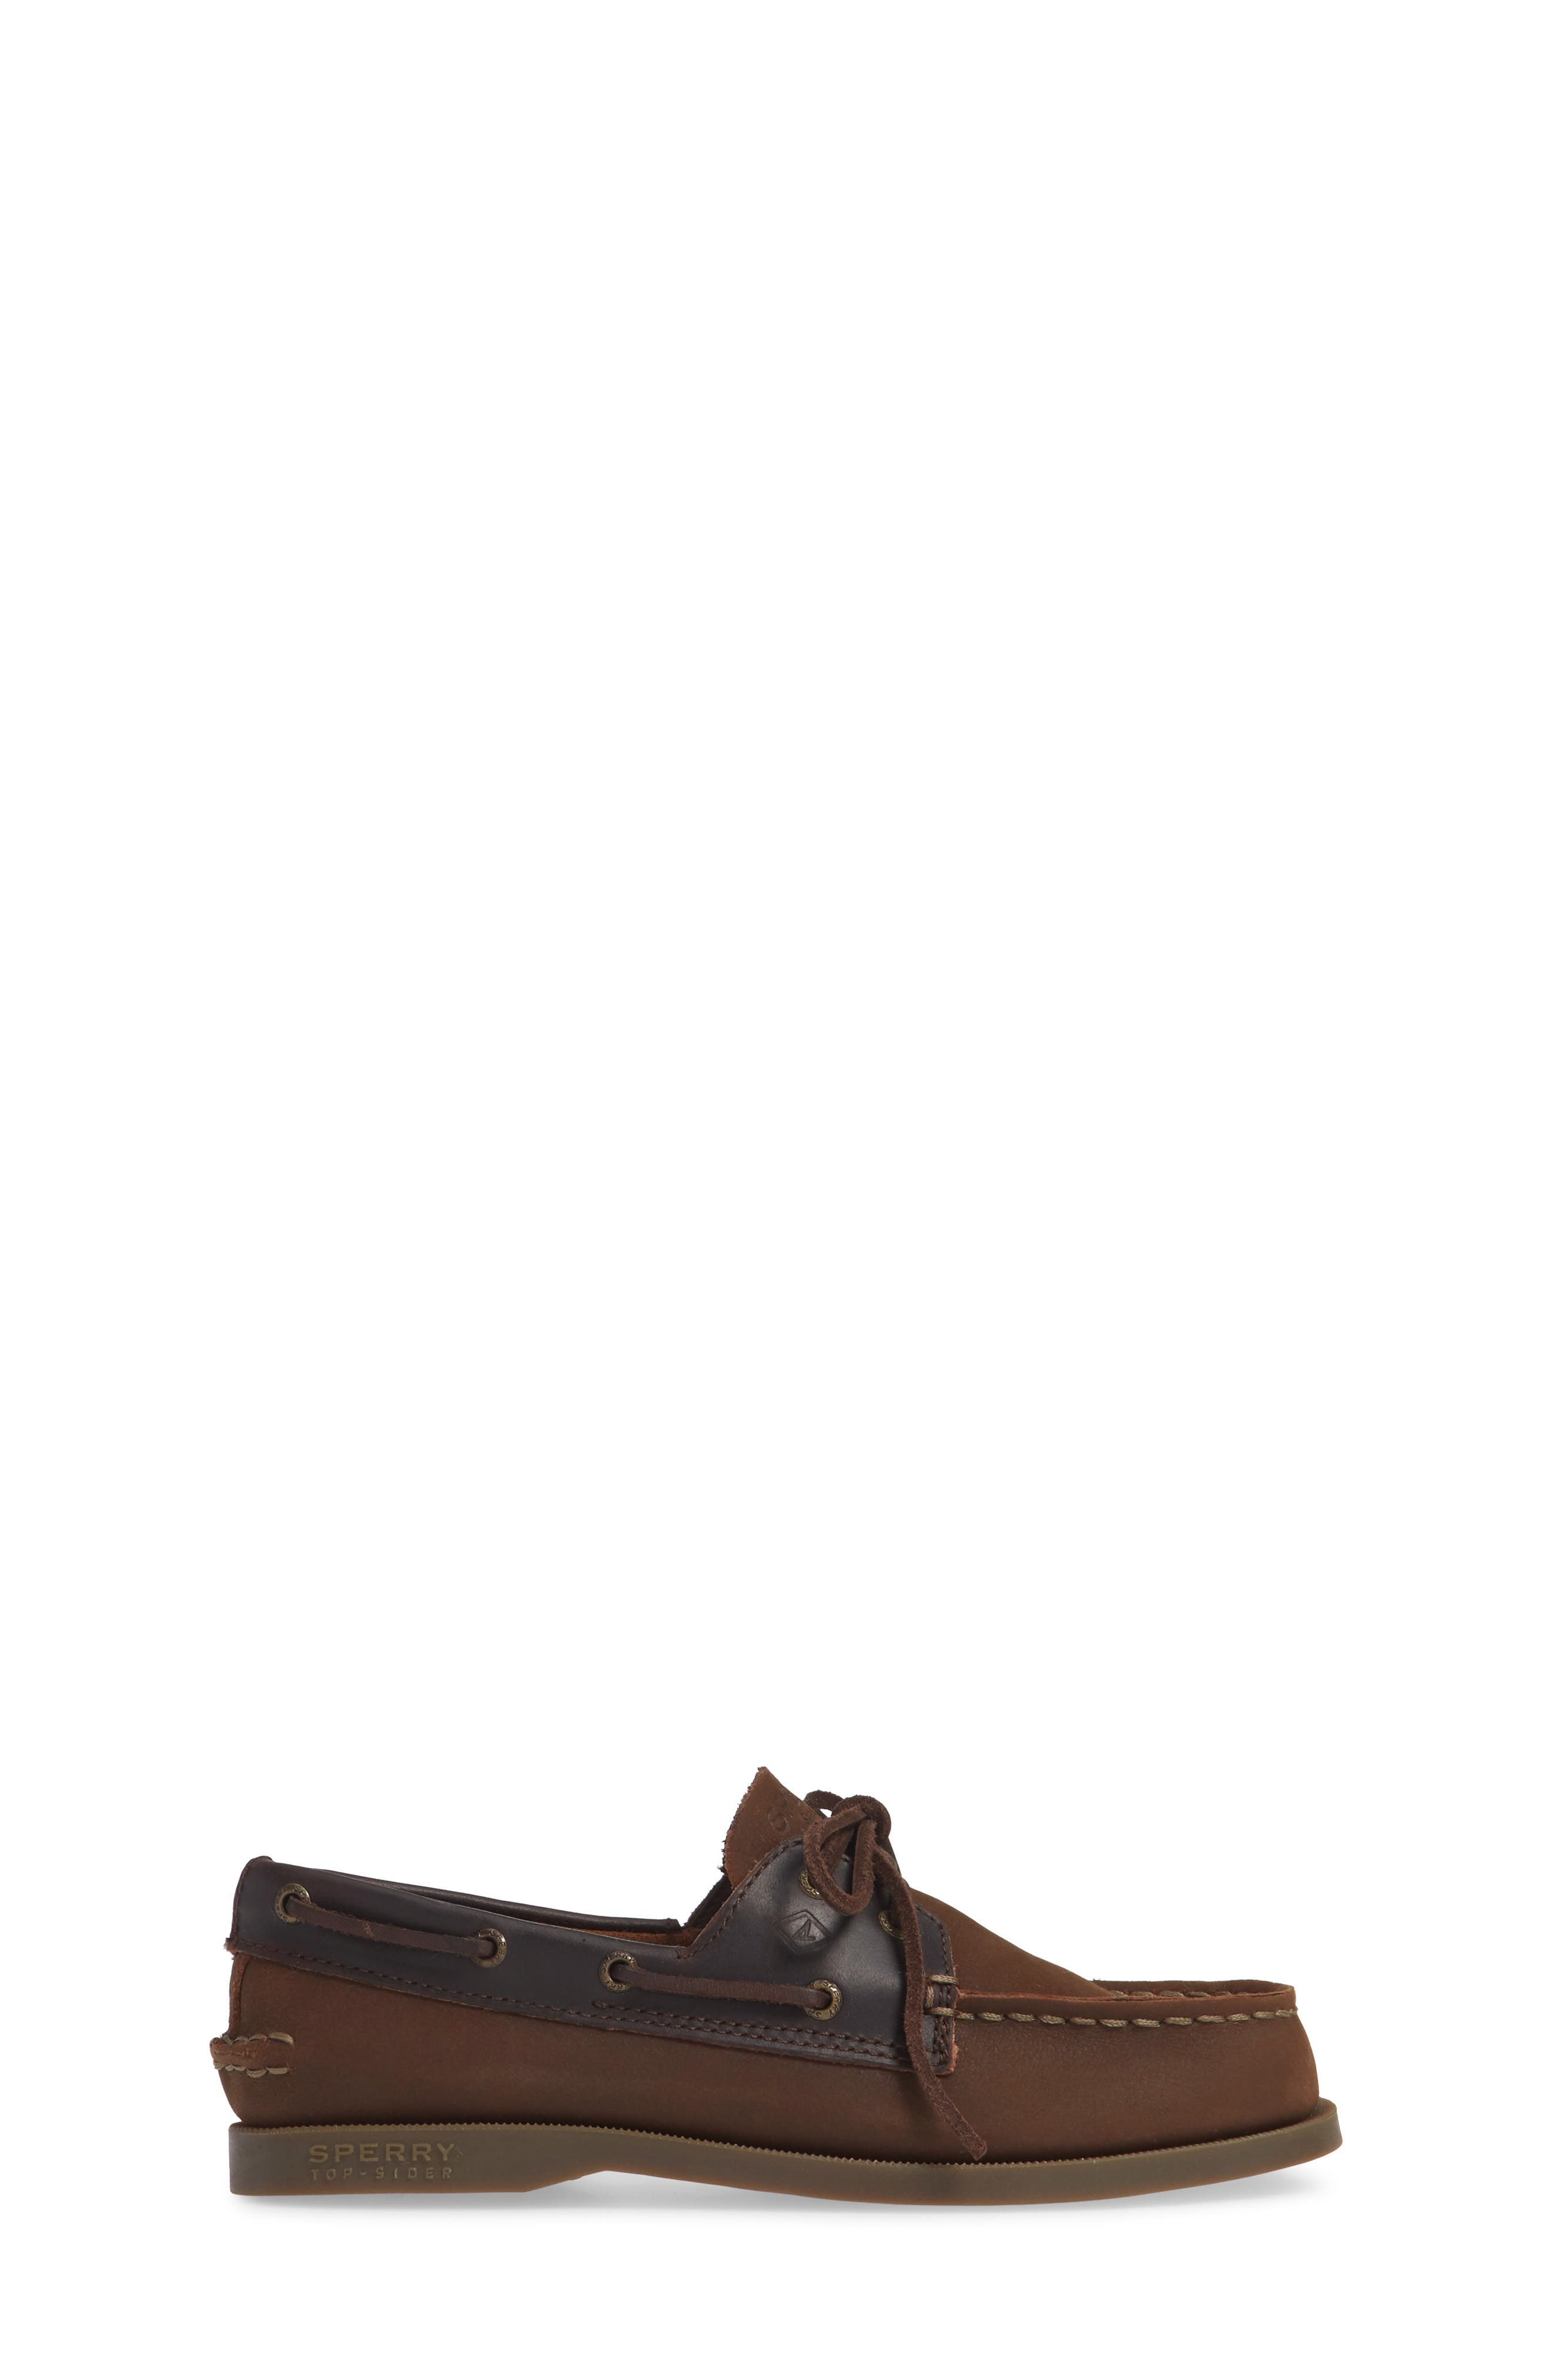 SPERRY KIDS, 'Authentic Original' Boat Shoe, Alternate thumbnail 3, color, BROWN BUCK LEATHER